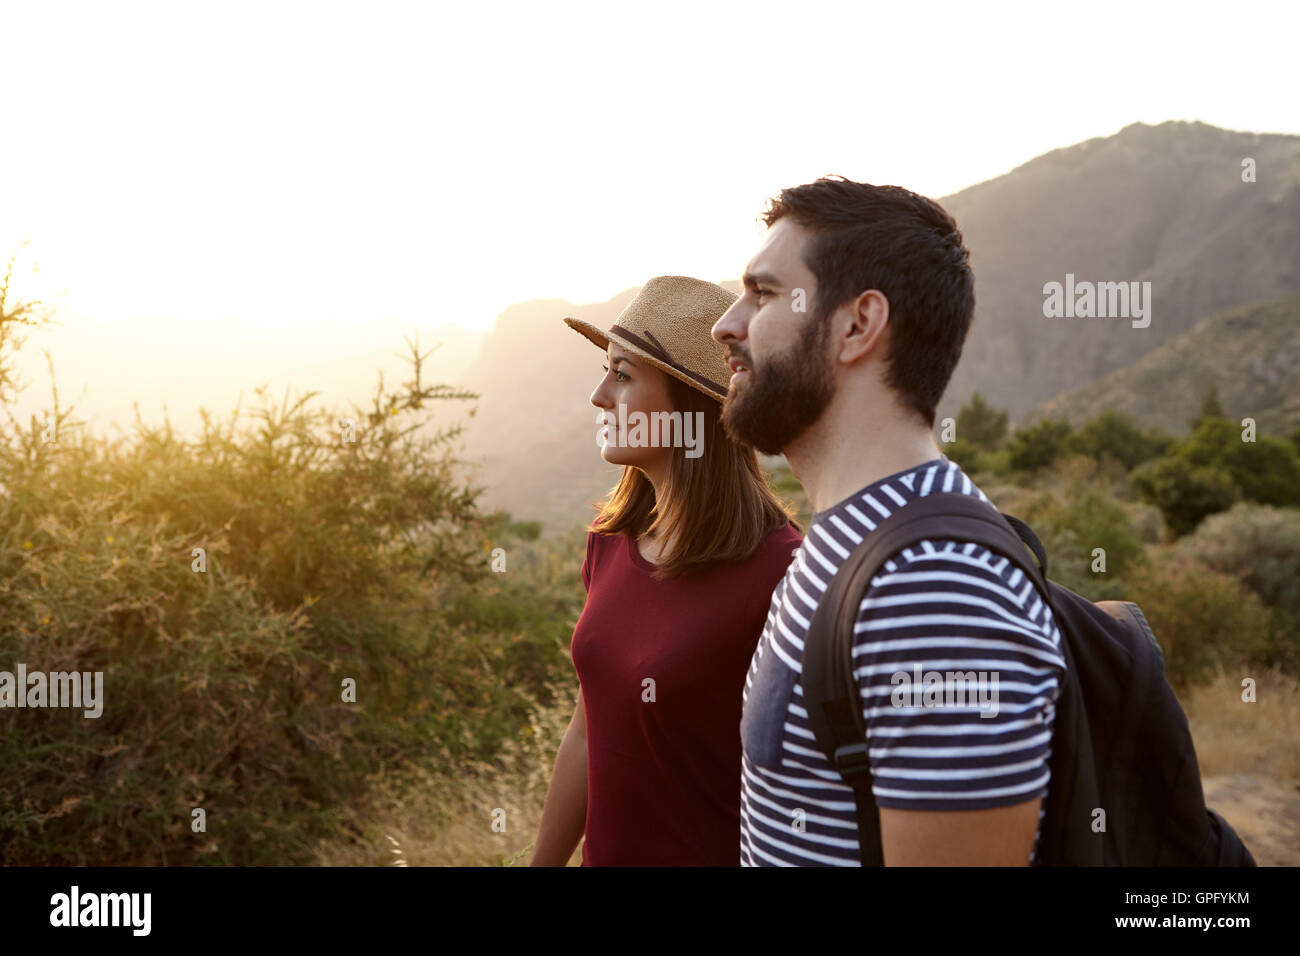 Young couple looking at something far away surrounded by bushes and very bright sun to their right wearing t-shirts - Stock Image